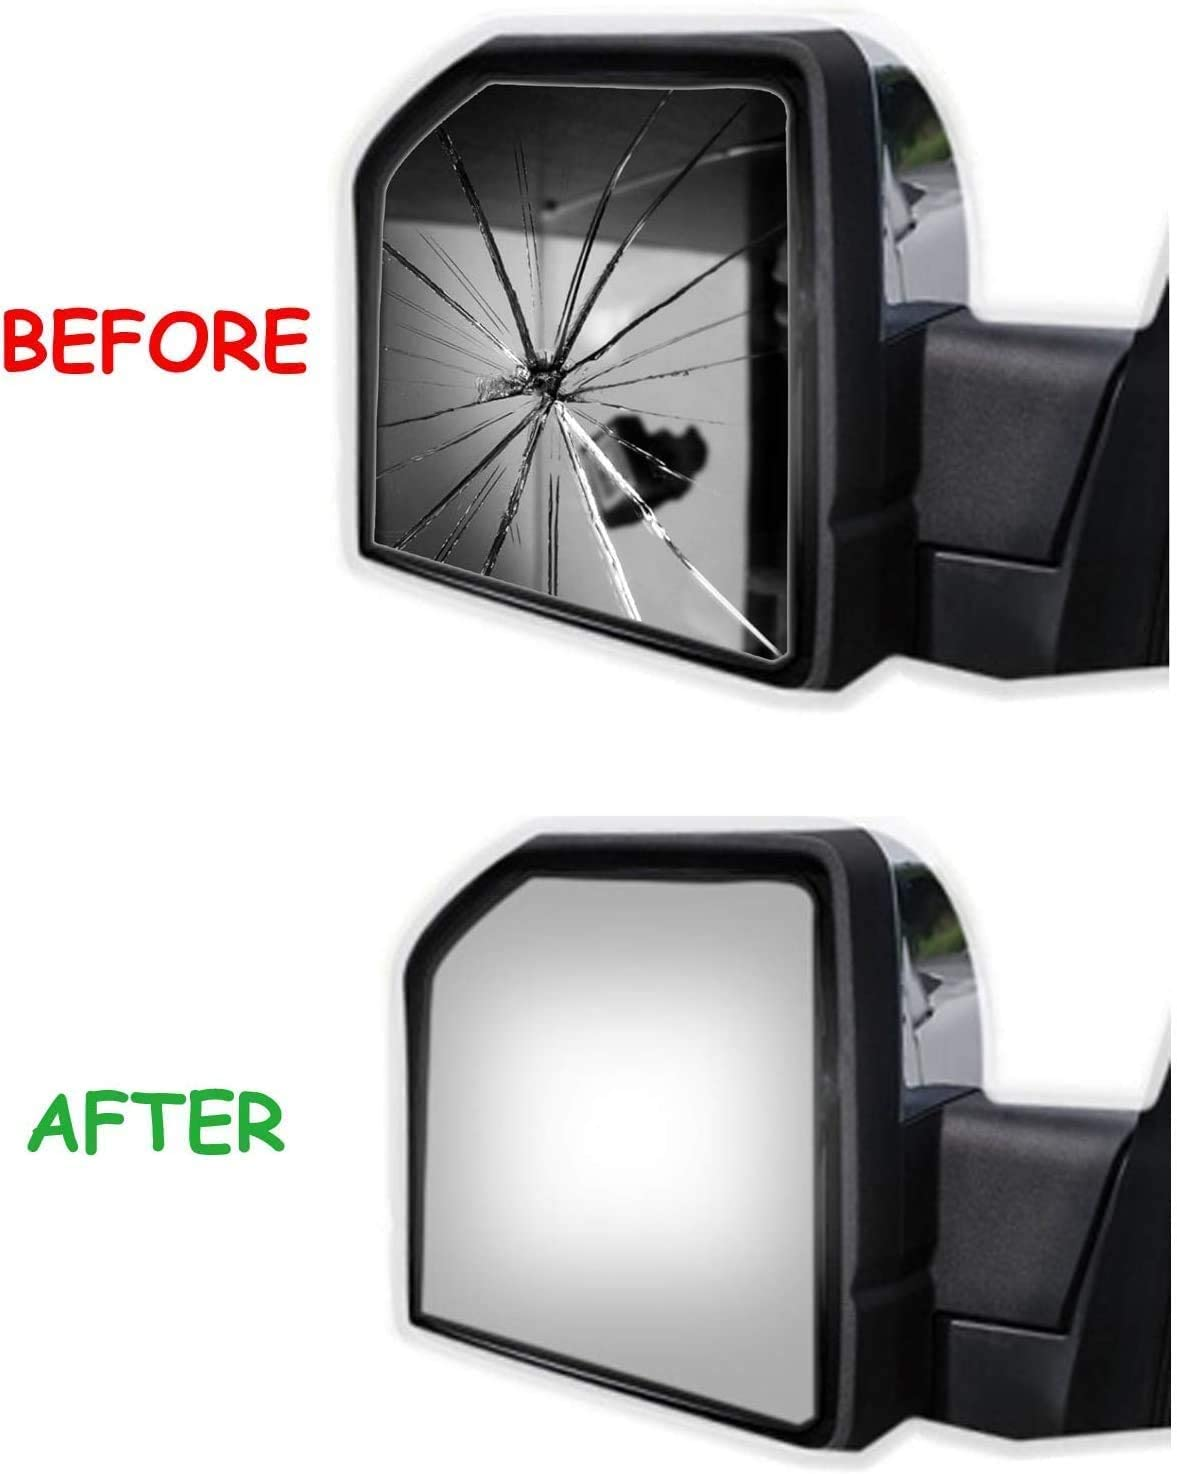 WLLW Side Mirror Replacement Glass for 02-08 Dodge Ram 1500 Driver Side 2500 3500 Van 4000